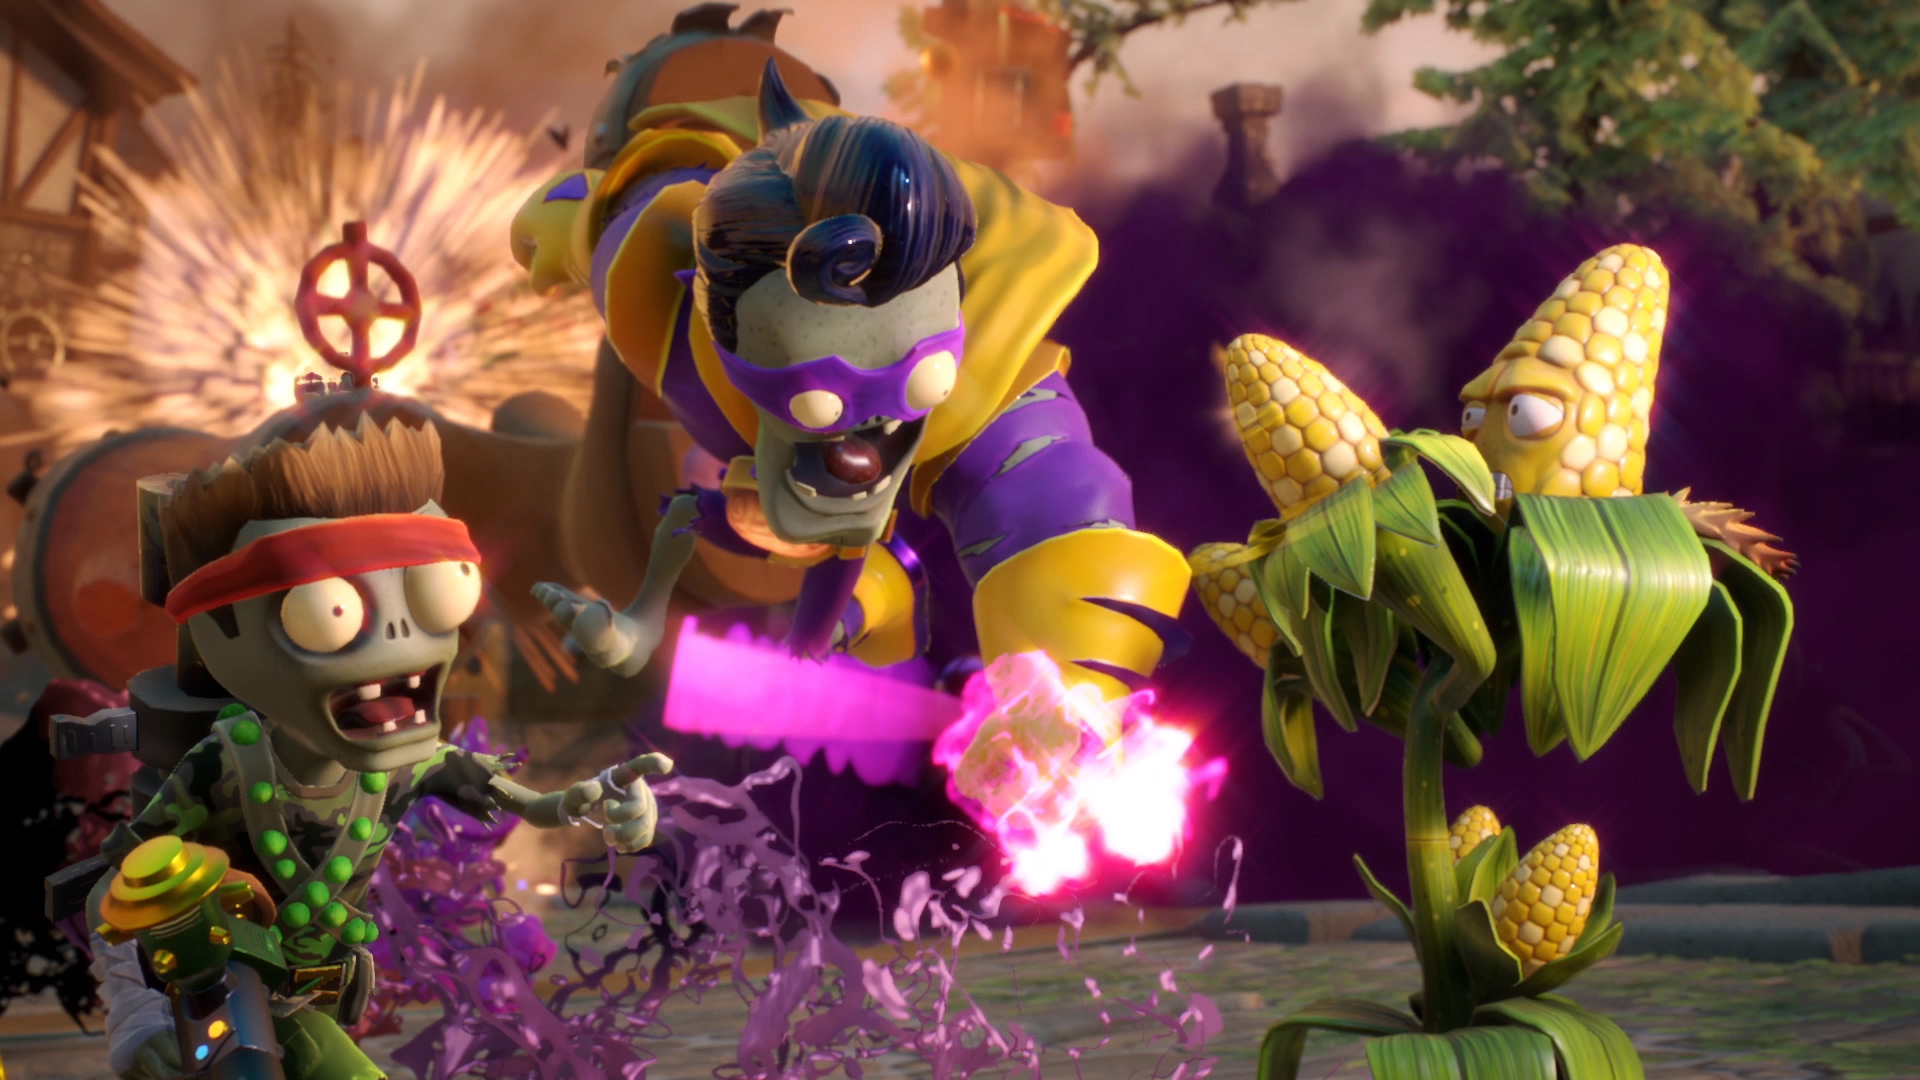 Plants Vs Zombies Garden Warfare 2 Top 21 Things To Know